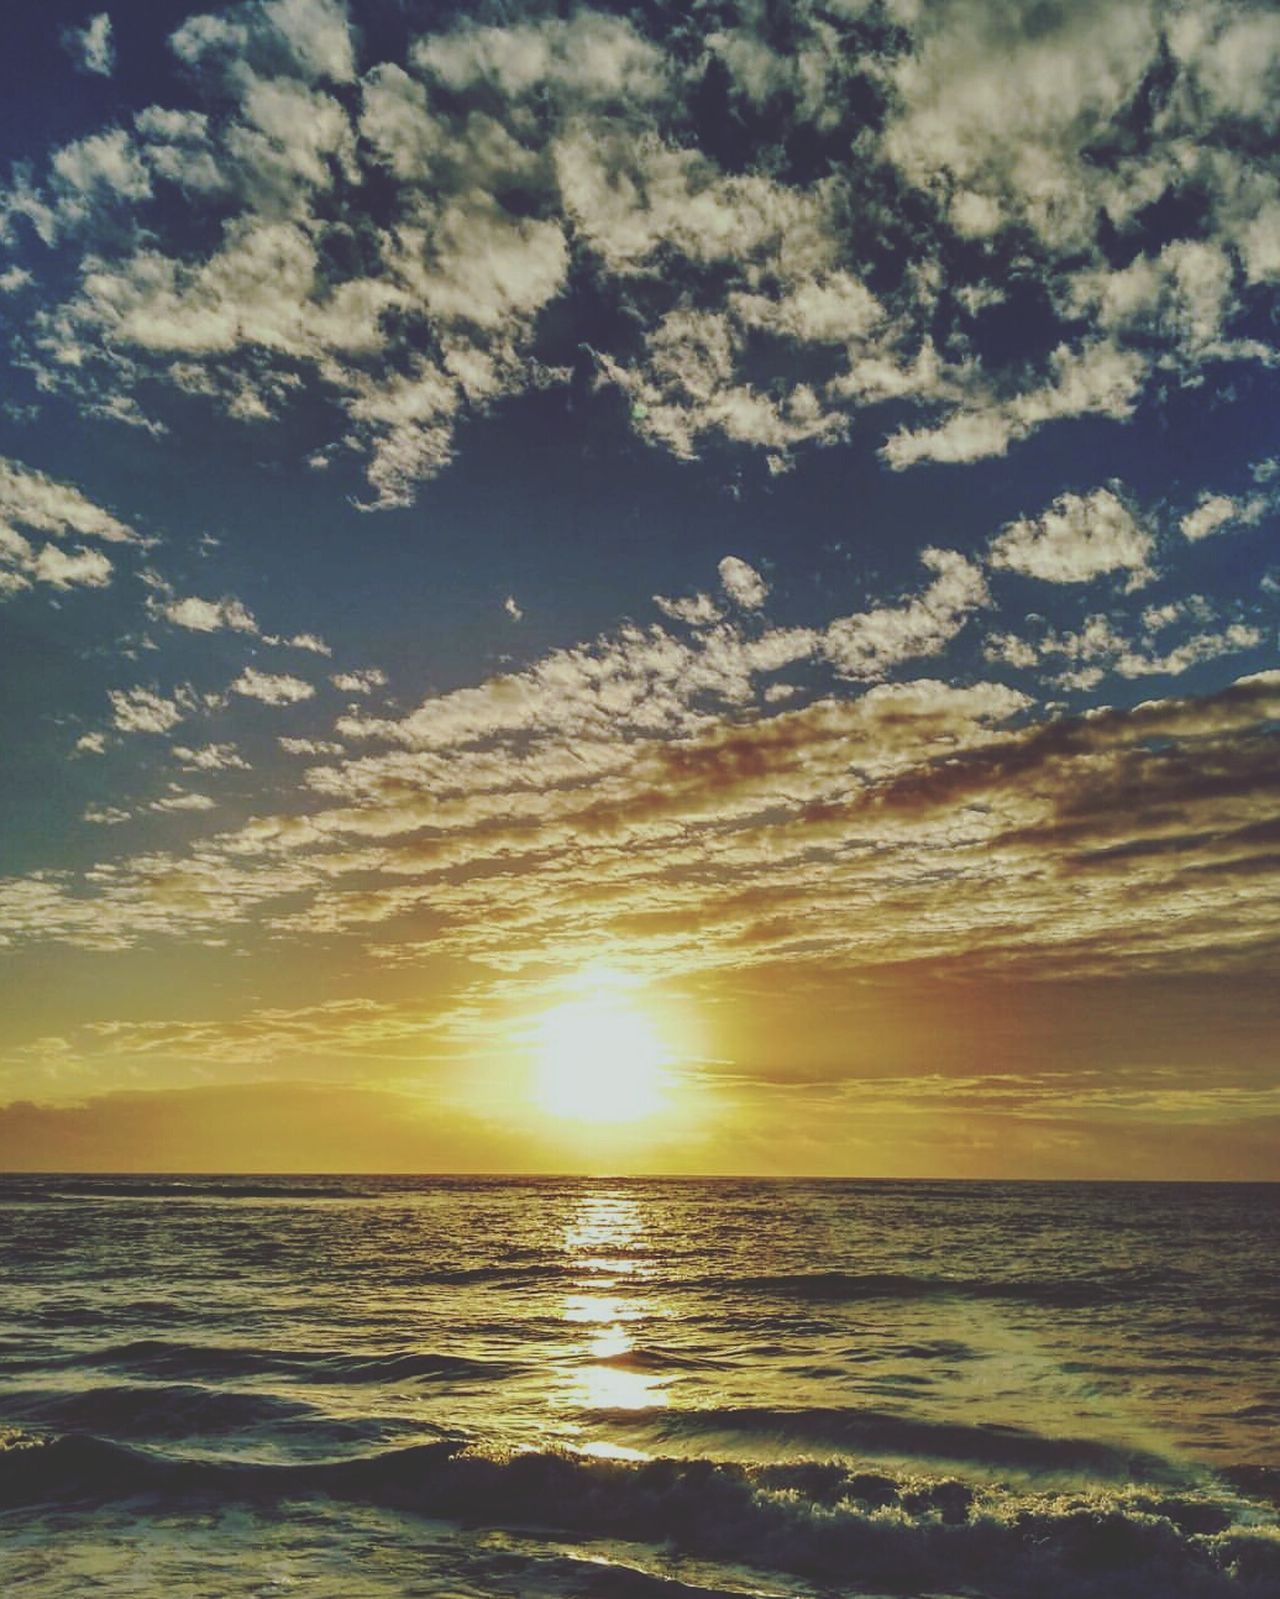 Beach Sunset Sea No People Outdoors Sky Sand Horizon Over Water Water Sun Nature Beauty In Nature Day First Eyeem Photo